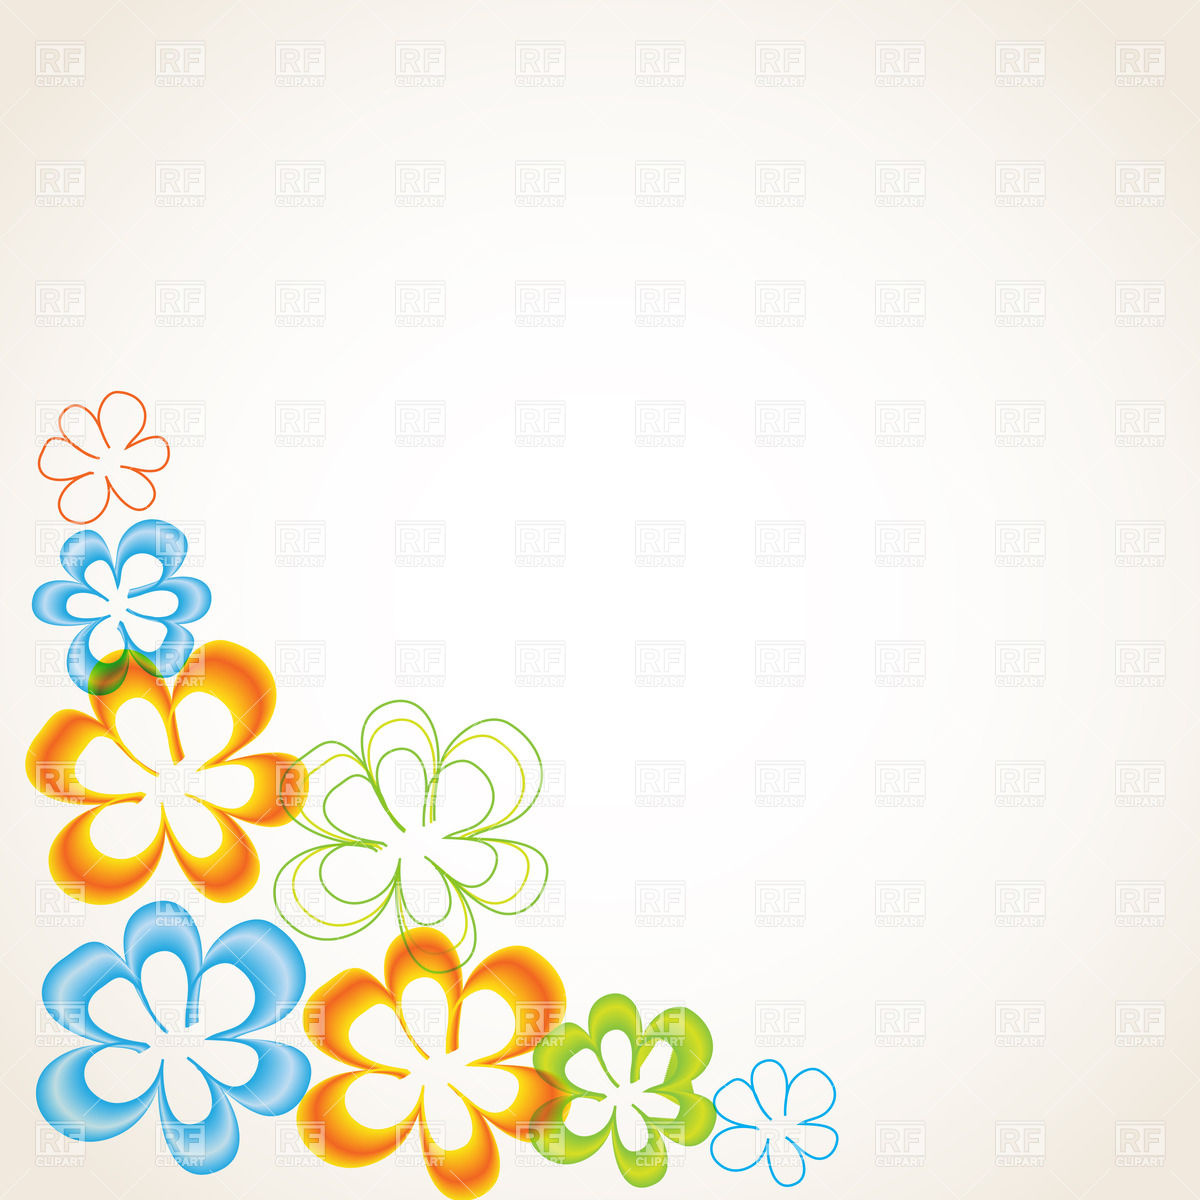 Stylized Floral Corner Download Royalty Free Vector Clipart  Eps